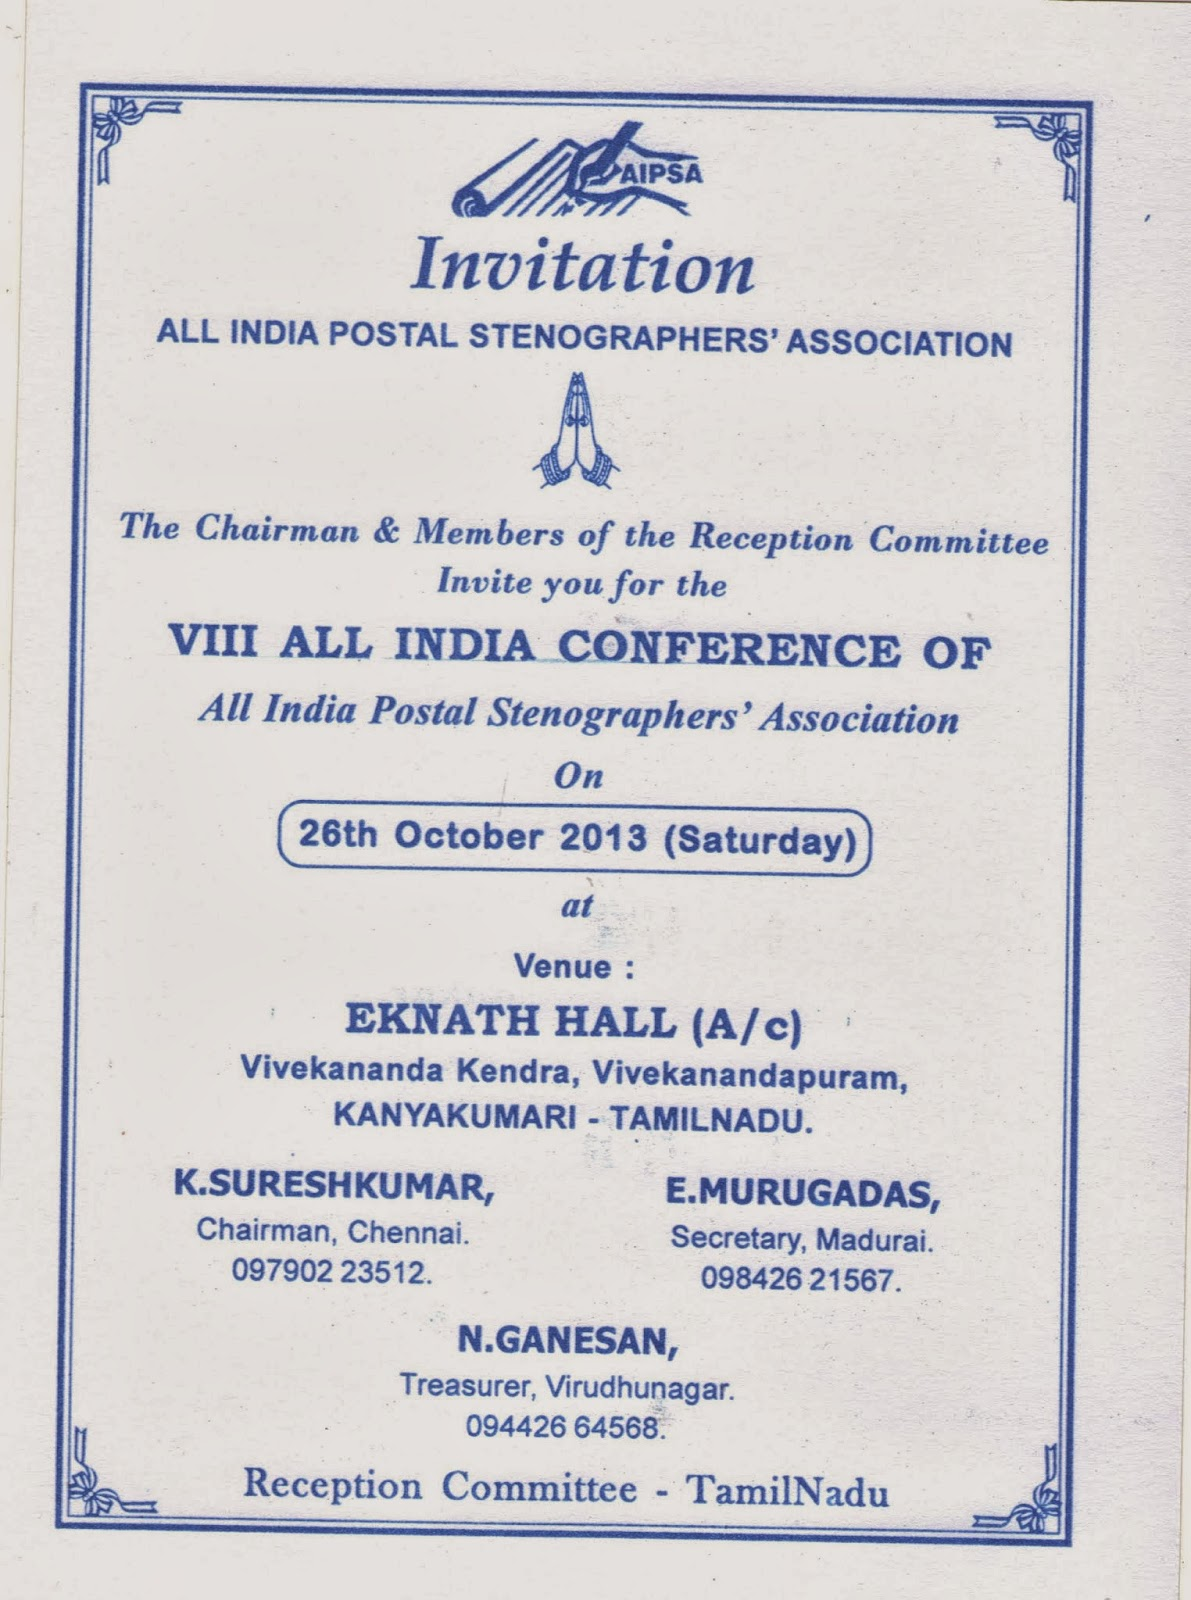 Tamil nadu circle postal stenographers association invitation of invitation of kanyakumari all india conference of aipsa stopboris Gallery